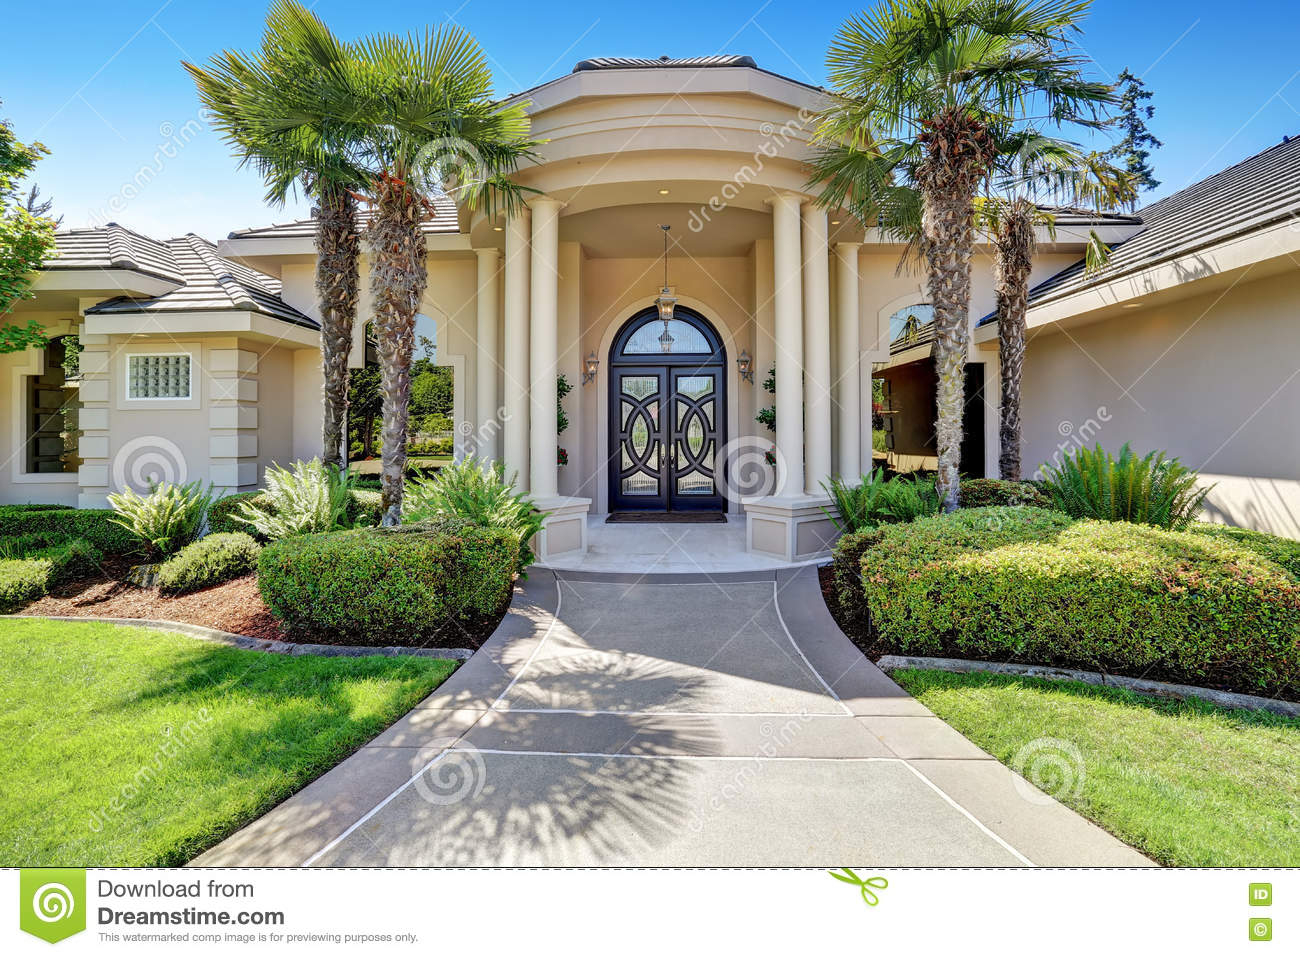 Suburban Luxury House With Column Porch And Arched